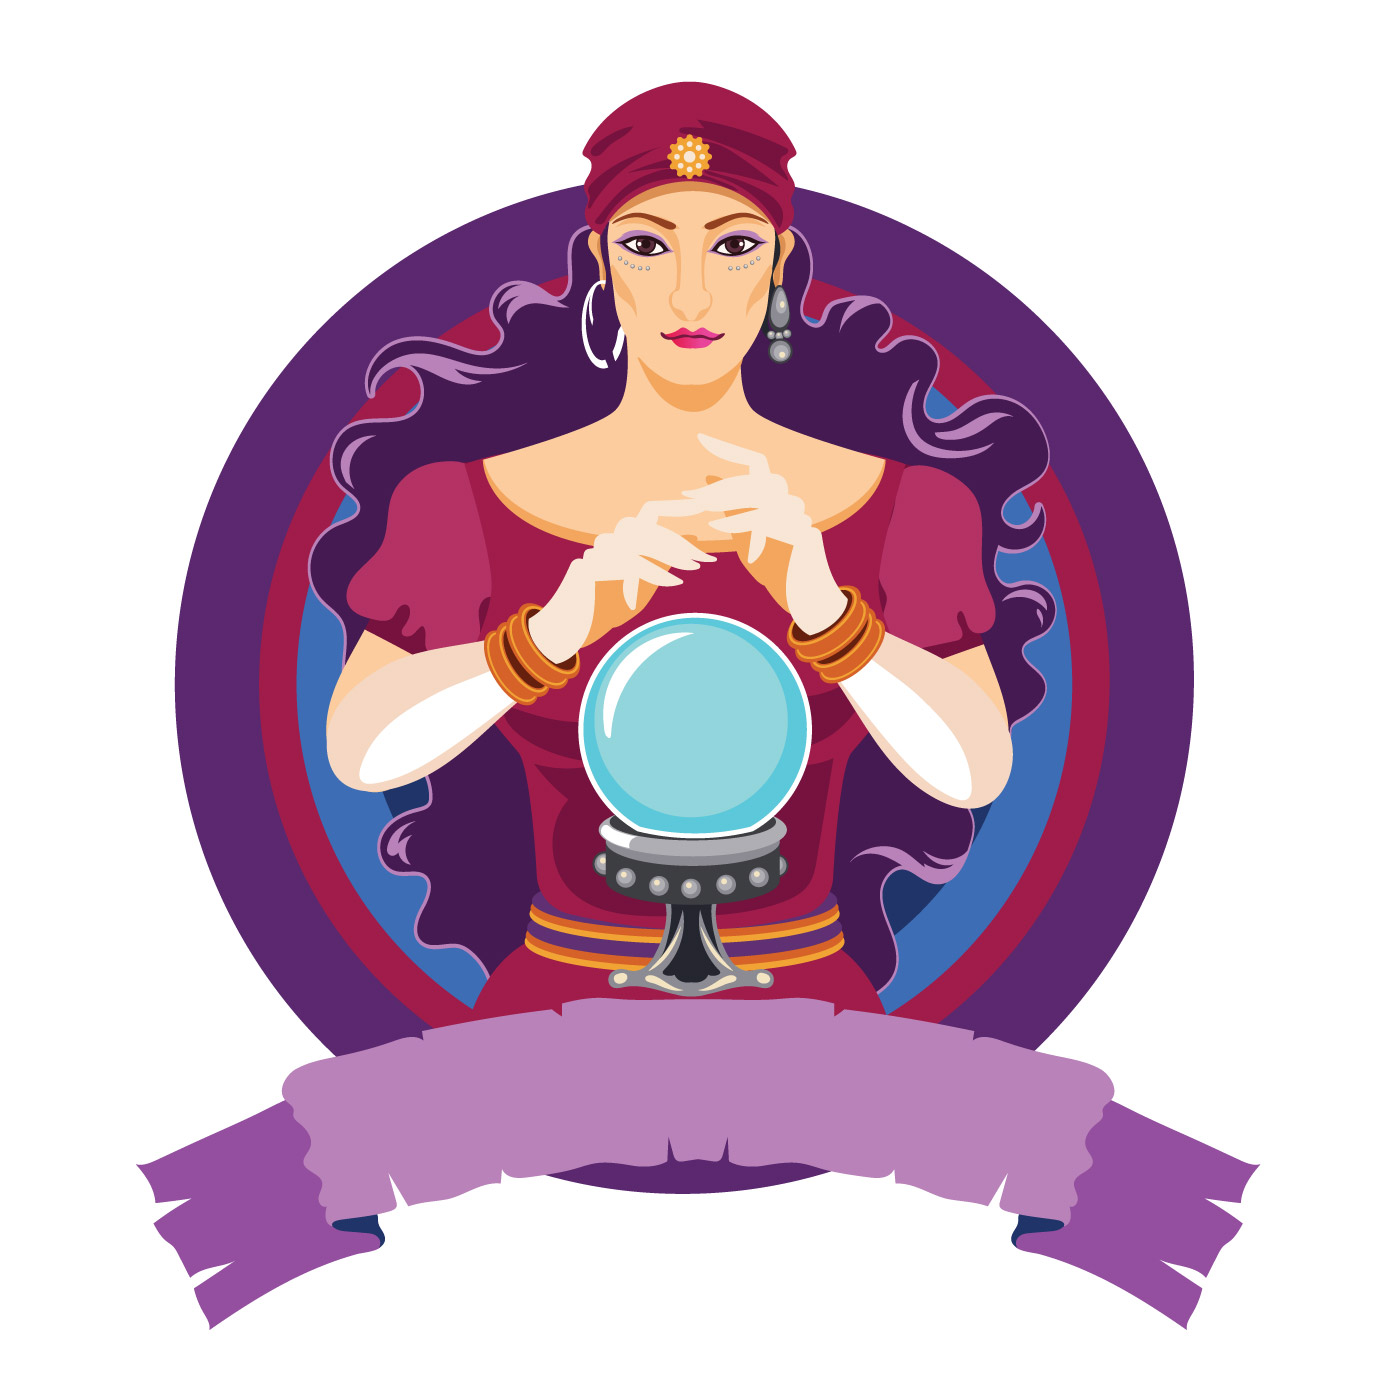 Woman with crystal ball clipart banner freeuse Mystical Woman Free Vector Art - (43 Free Downloads) banner freeuse